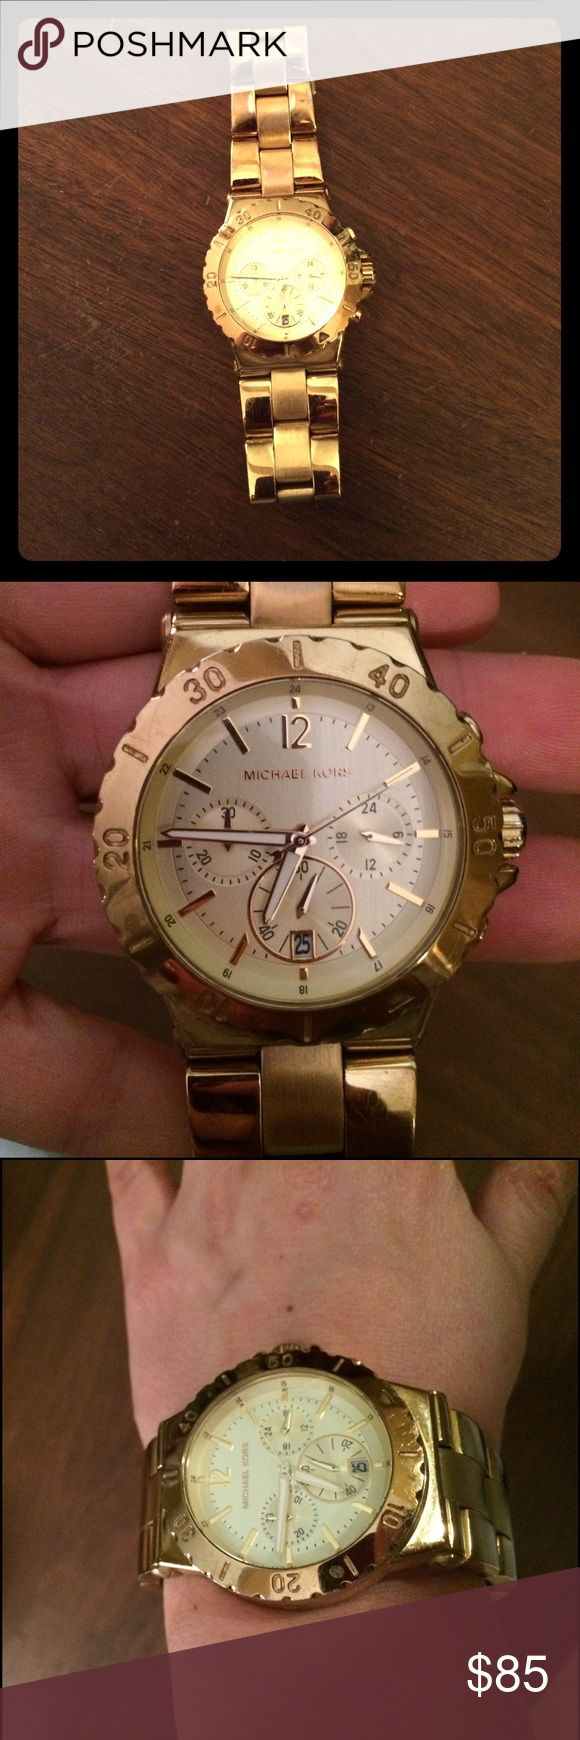 Michael Kors watch Michael Kors genuine gold large face watch. Gently used but in great condition!!! Michael Kors Accessories Watches